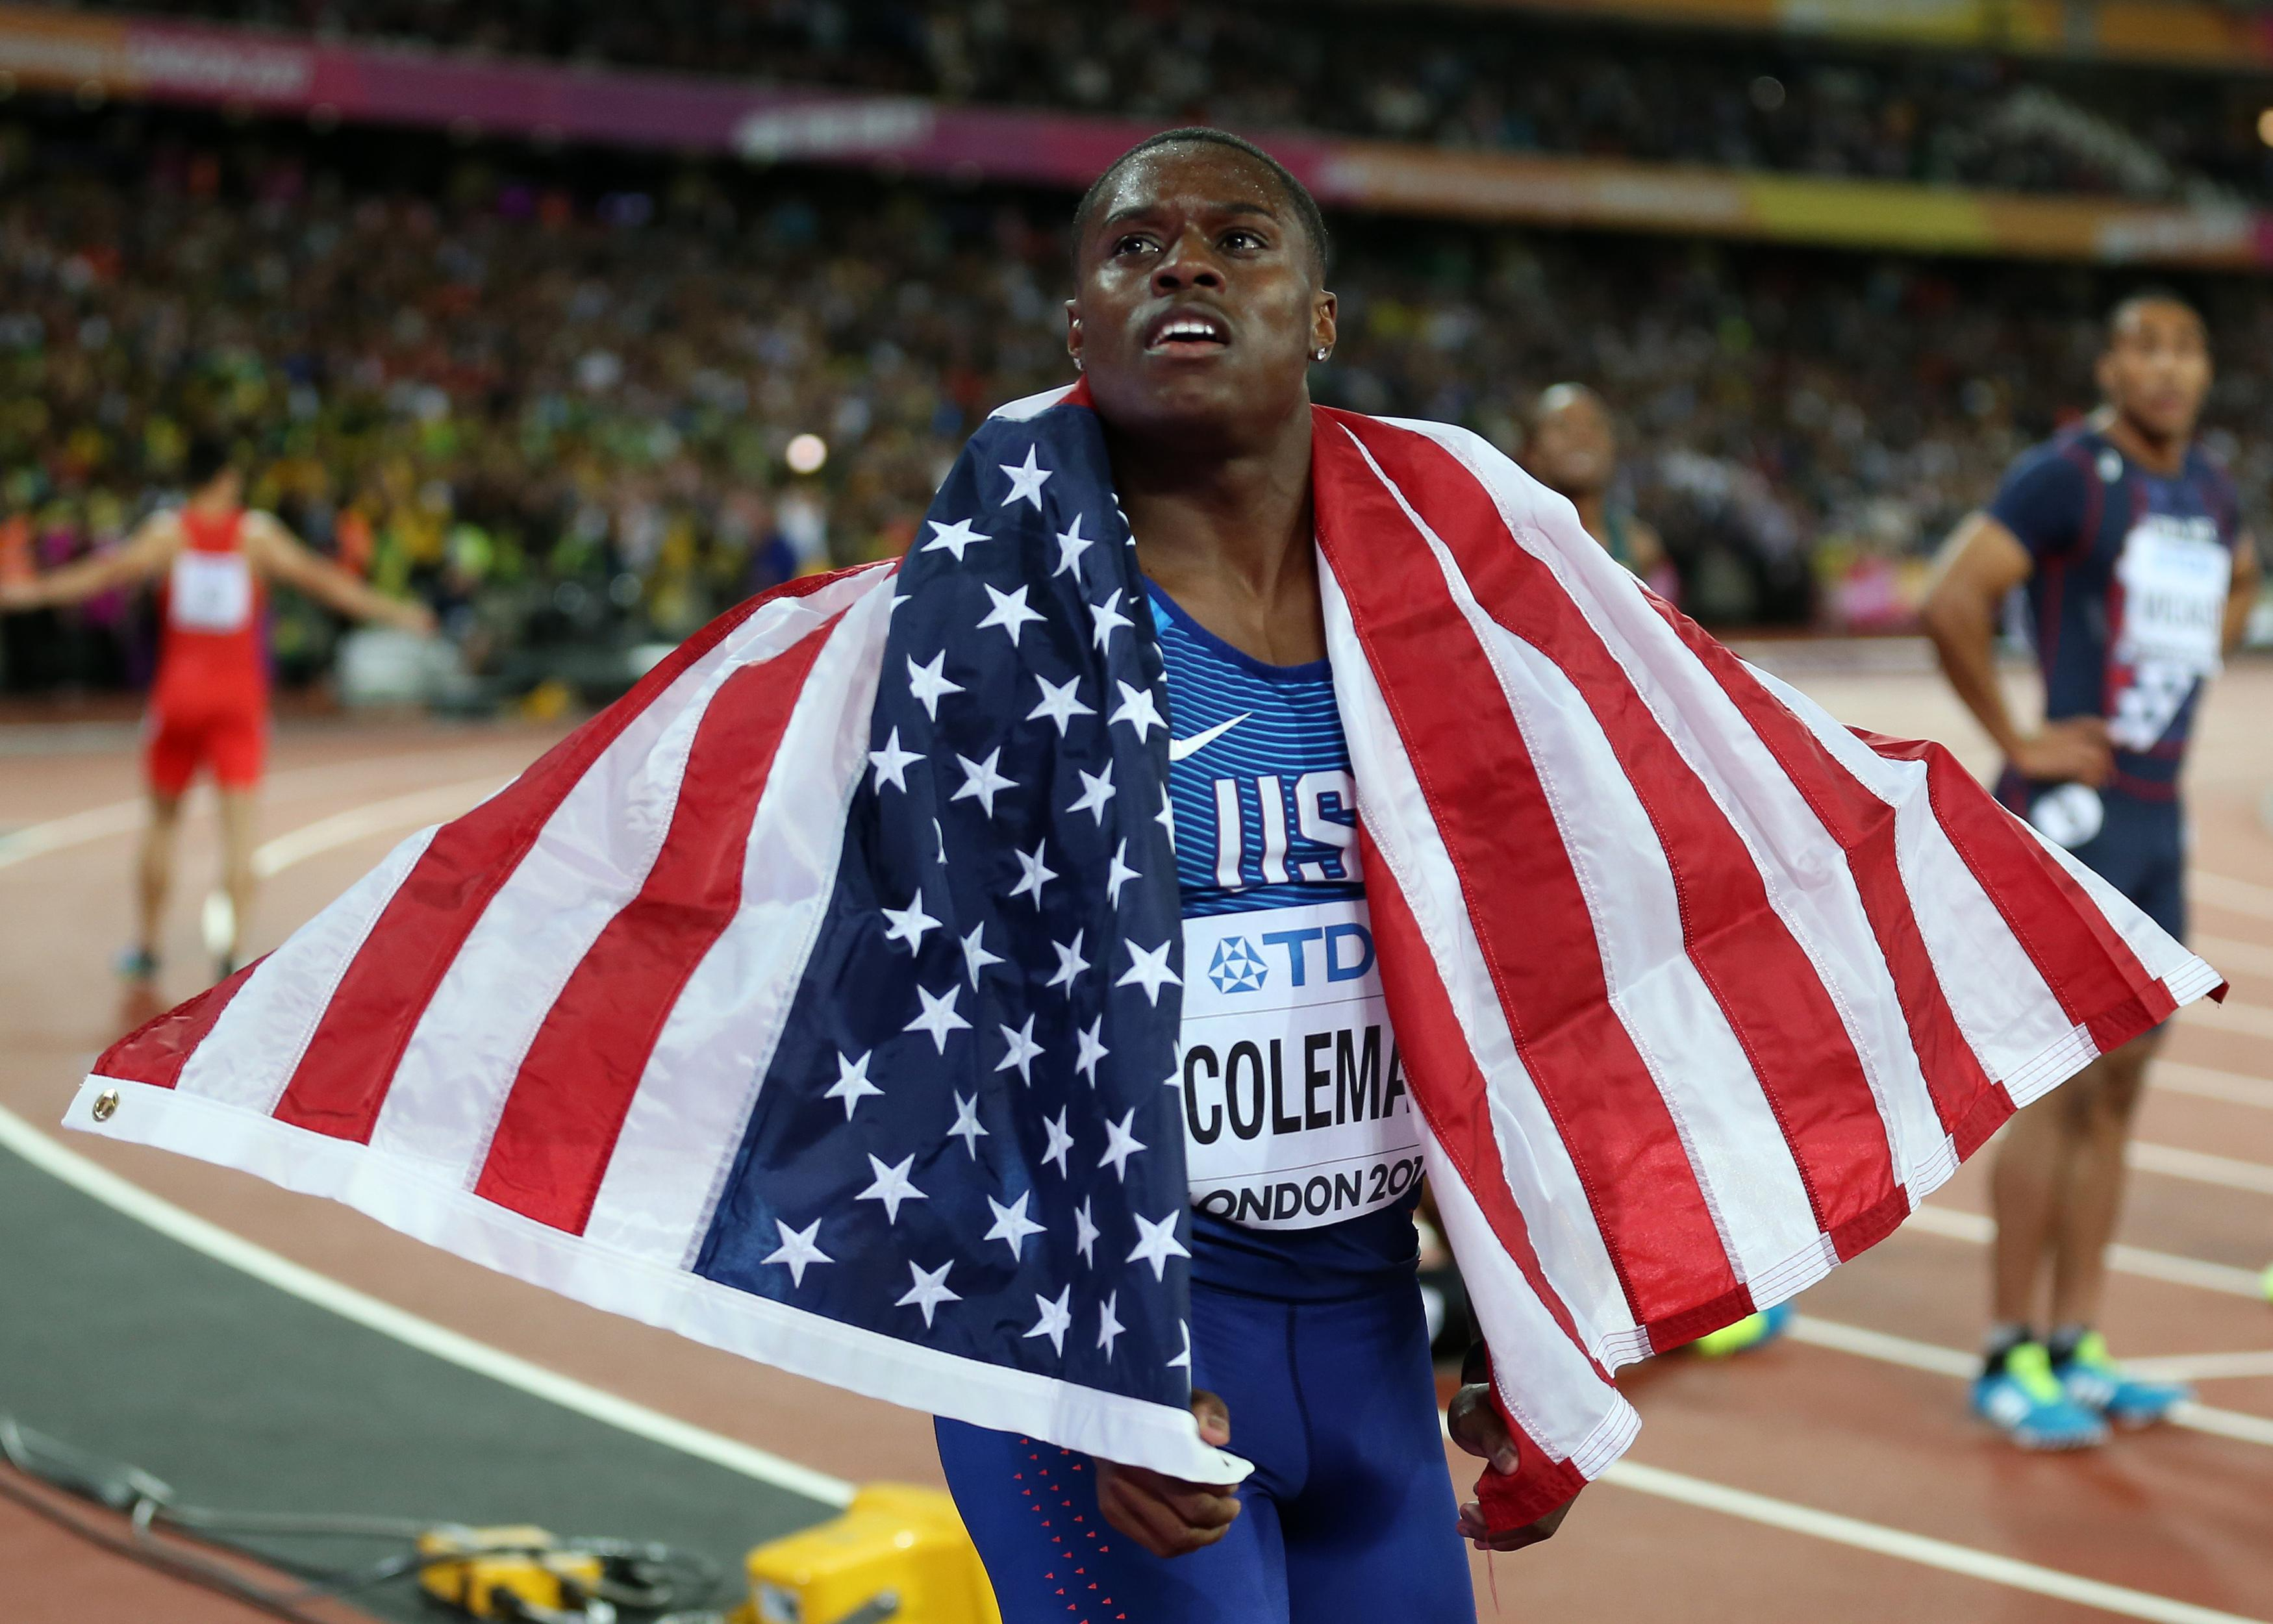 Christian Coleman is arguably the top contender to Usain Bolt's throne